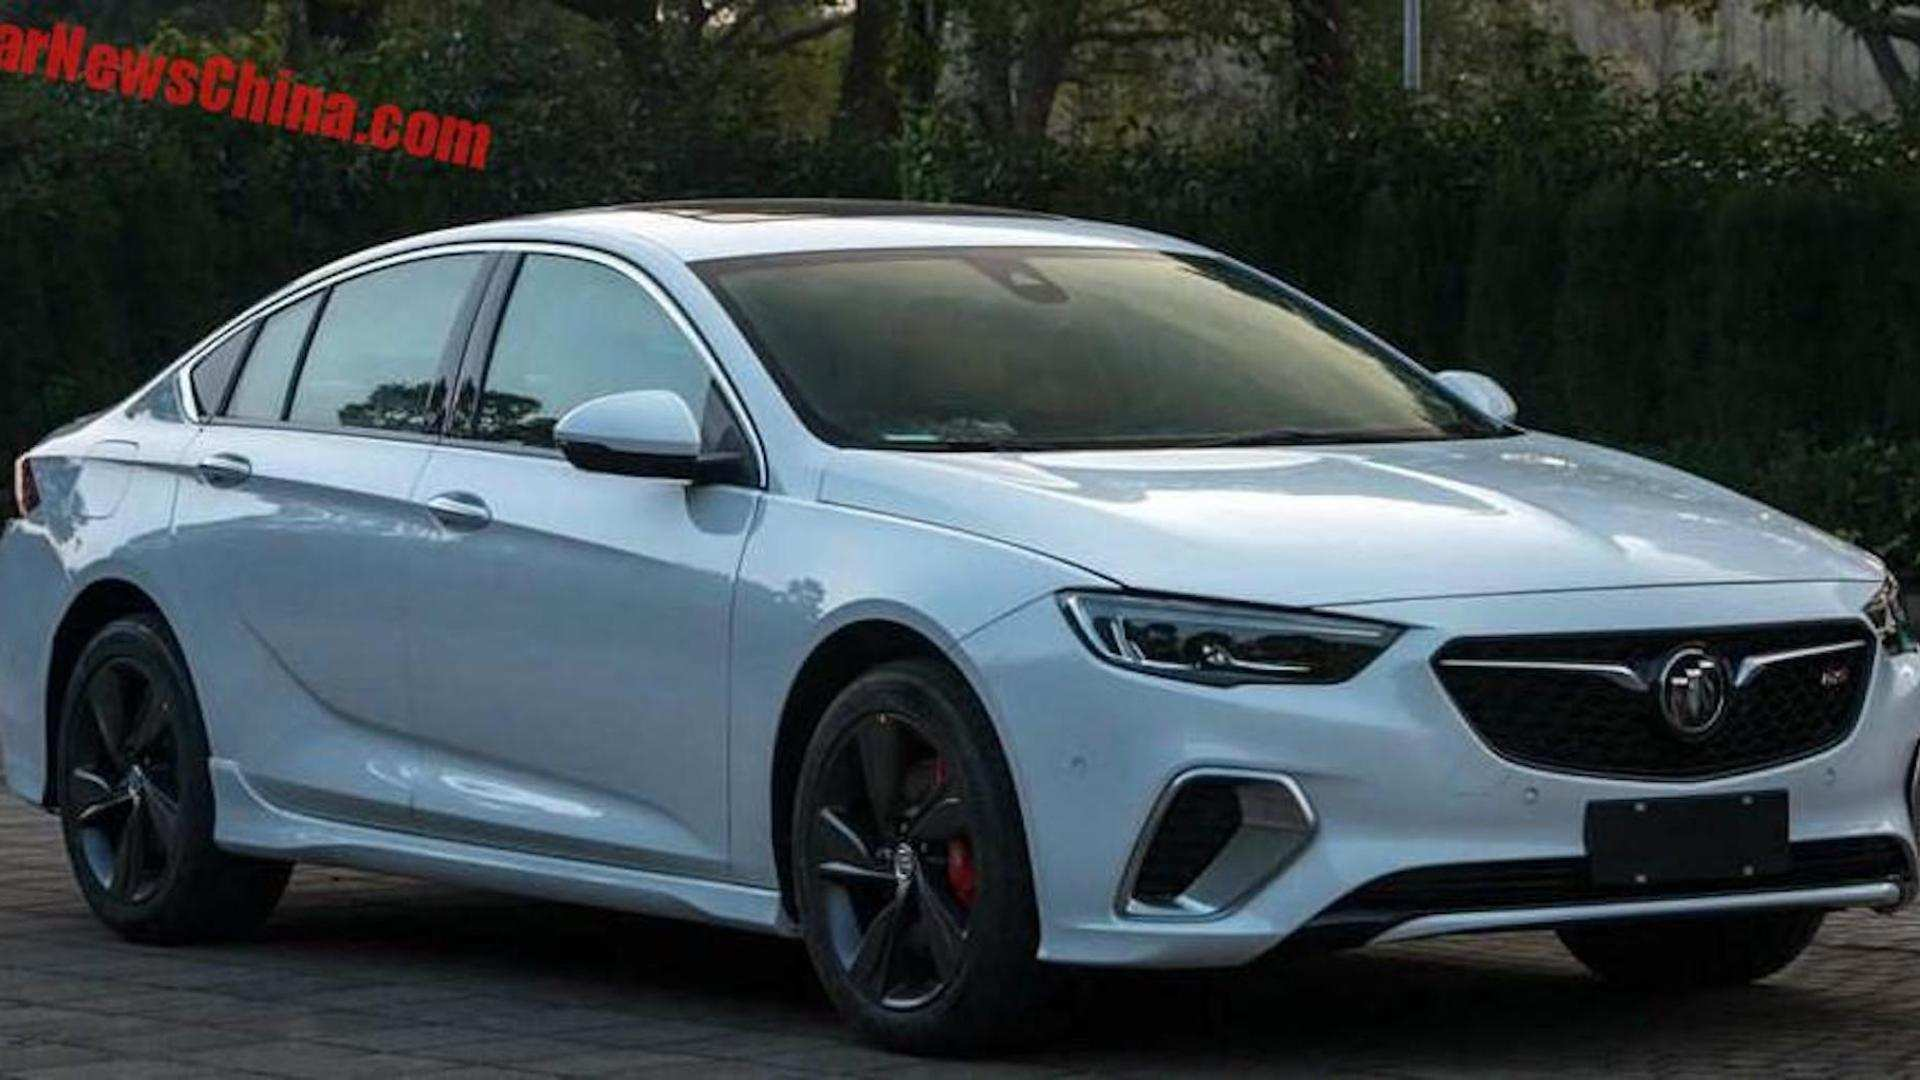 83 All New New 2019 Buick Regal Hybrid Price And Release Date Exterior by New 2019 Buick Regal Hybrid Price And Release Date